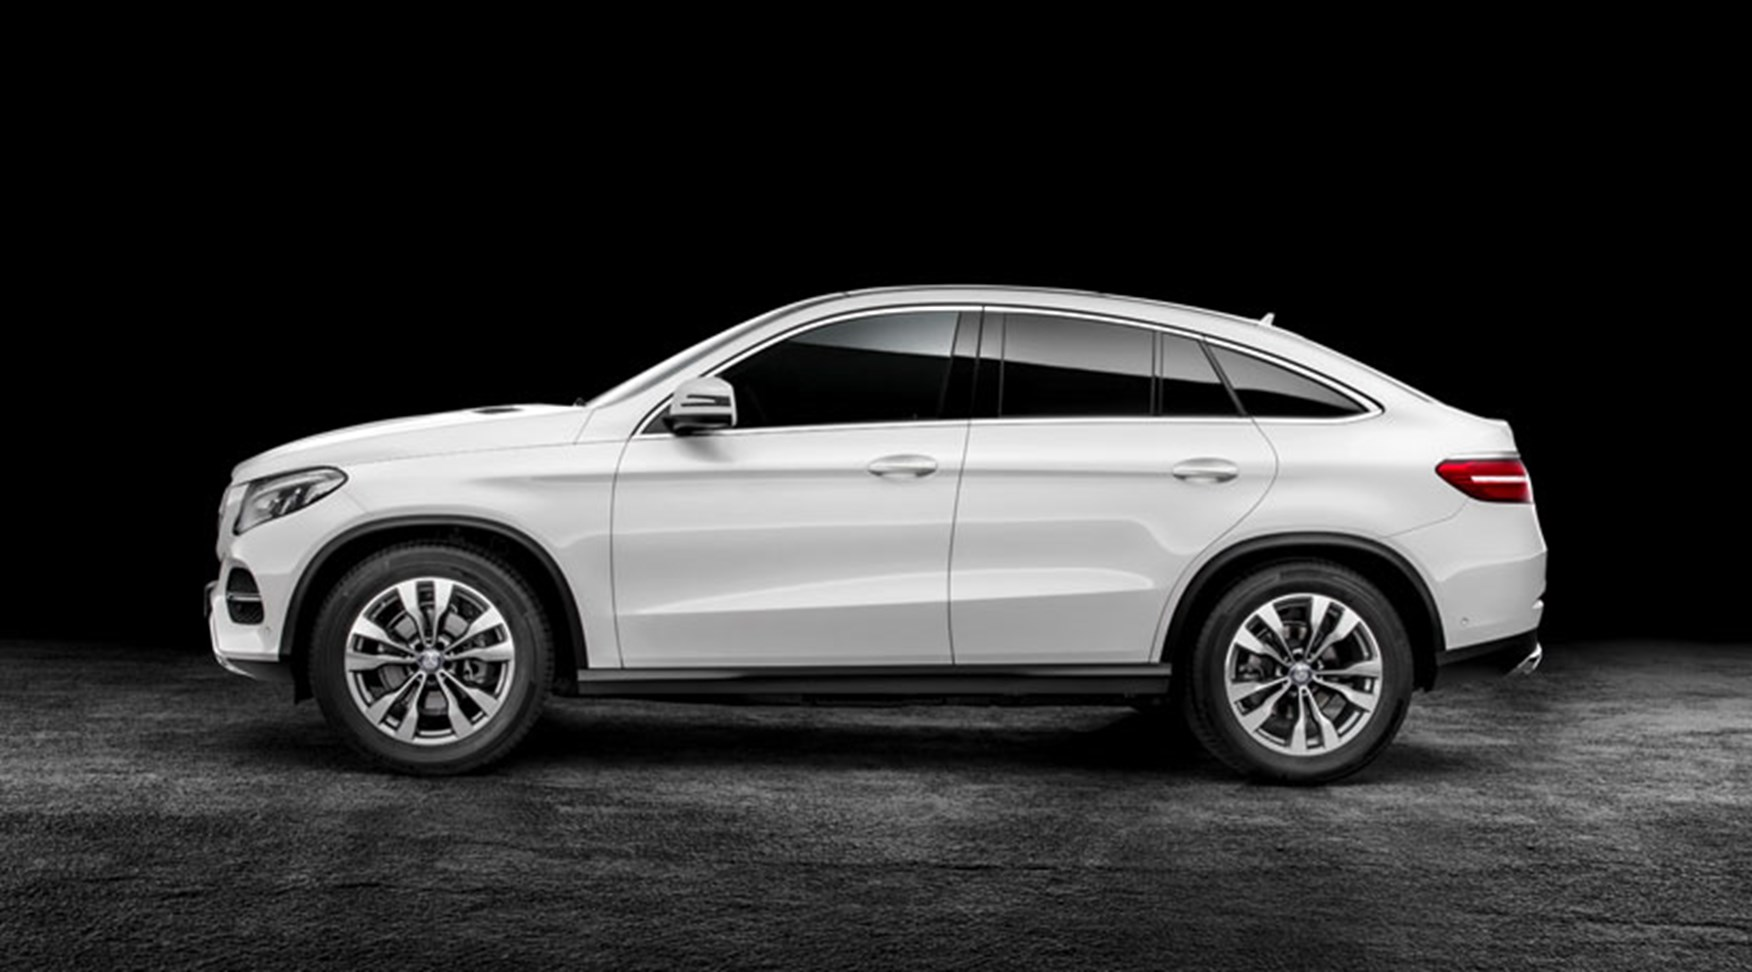 mercedes gle coupe (2015): first official pictures of merc's x6